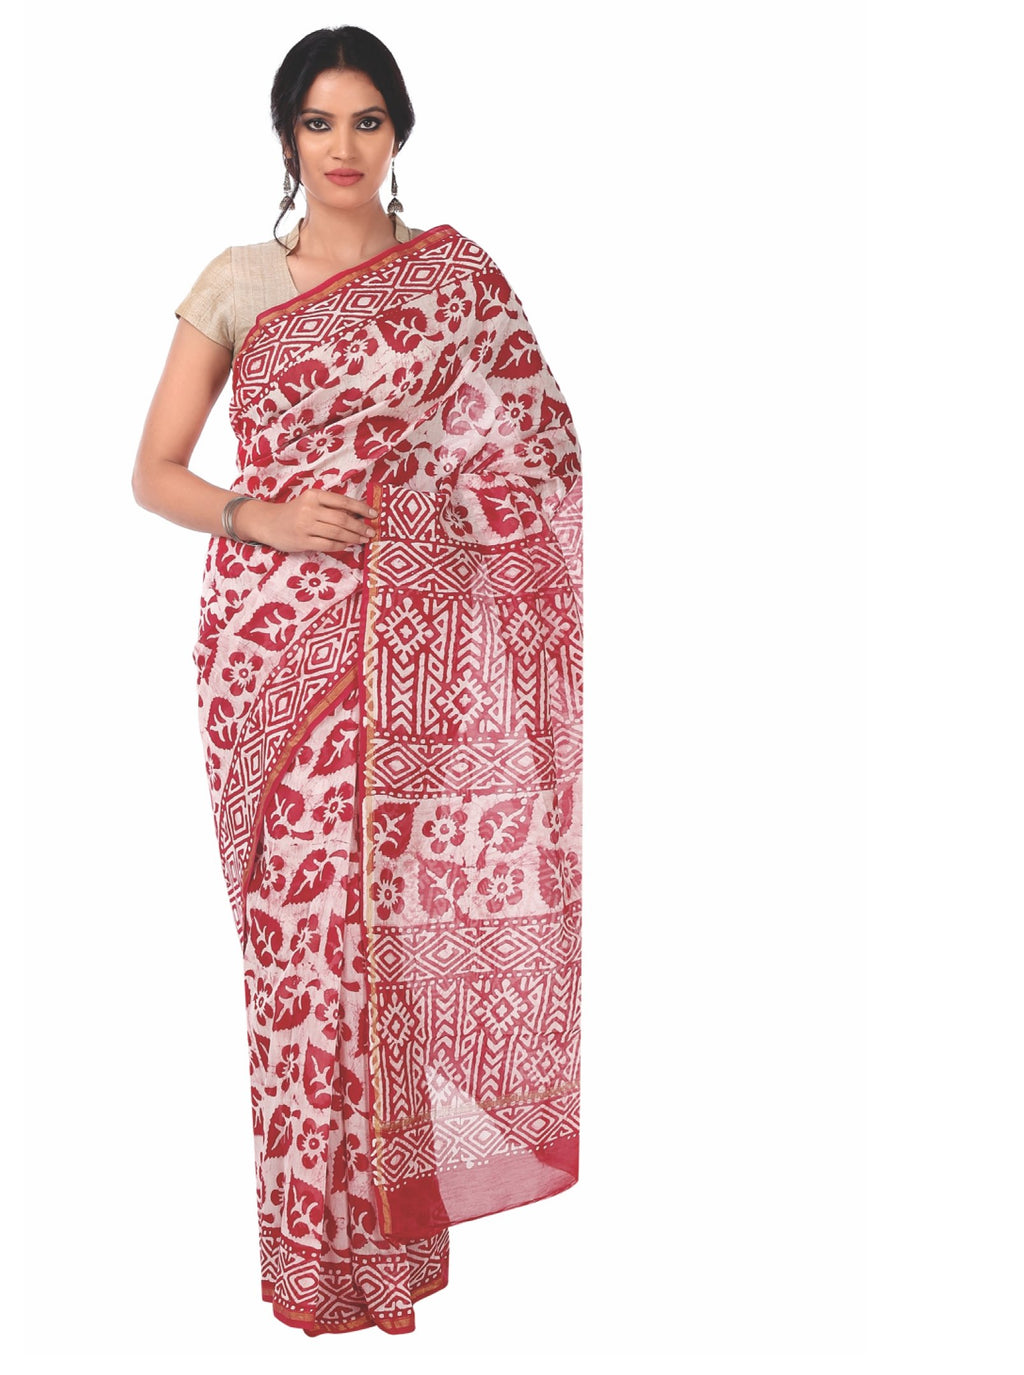 Red Chanderi Silk Batik Hand Block Print Handcrafted Saree-Saree-Kalakari India-RDSNSA0058-Batik, Chanderi, Geographical Indication, Hand Blocks, Hand Crafted, Heritage Prints, Sarees, Silk, Sustainable Fabrics-[Linen,Ethnic,wear,Fashionista,Handloom,Handicraft,Indigo,blockprint,block,print,Cotton,Chanderi,Blue, latest,classy,party,bollywood,trendy,summer,style,traditional,formal,elegant,unique,style,hand,block,print, dabu,booti,gift,present,glamorous,affordable,collectible,Sari,Saree,printed, h